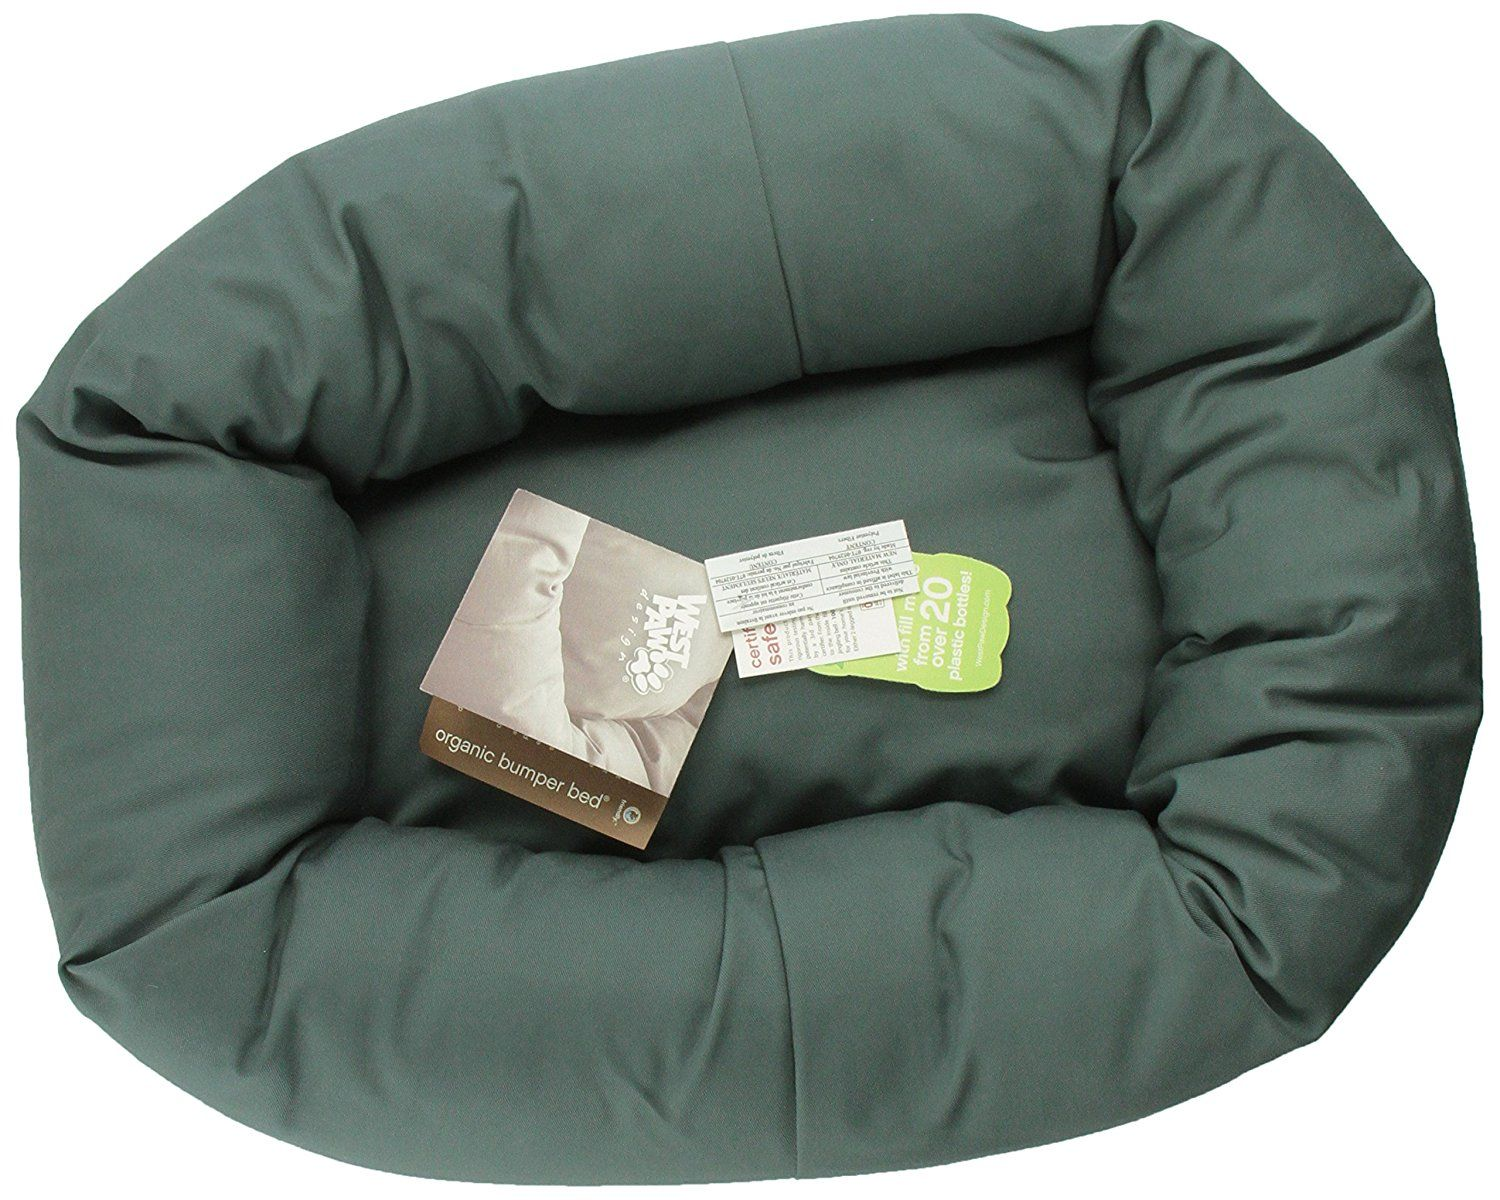 West Paw Design Organic Bumper Bed Small Stillwater Insider S Special Review You Can T Miss Read More Dog Beds West Paw Dog Bed Paw Design